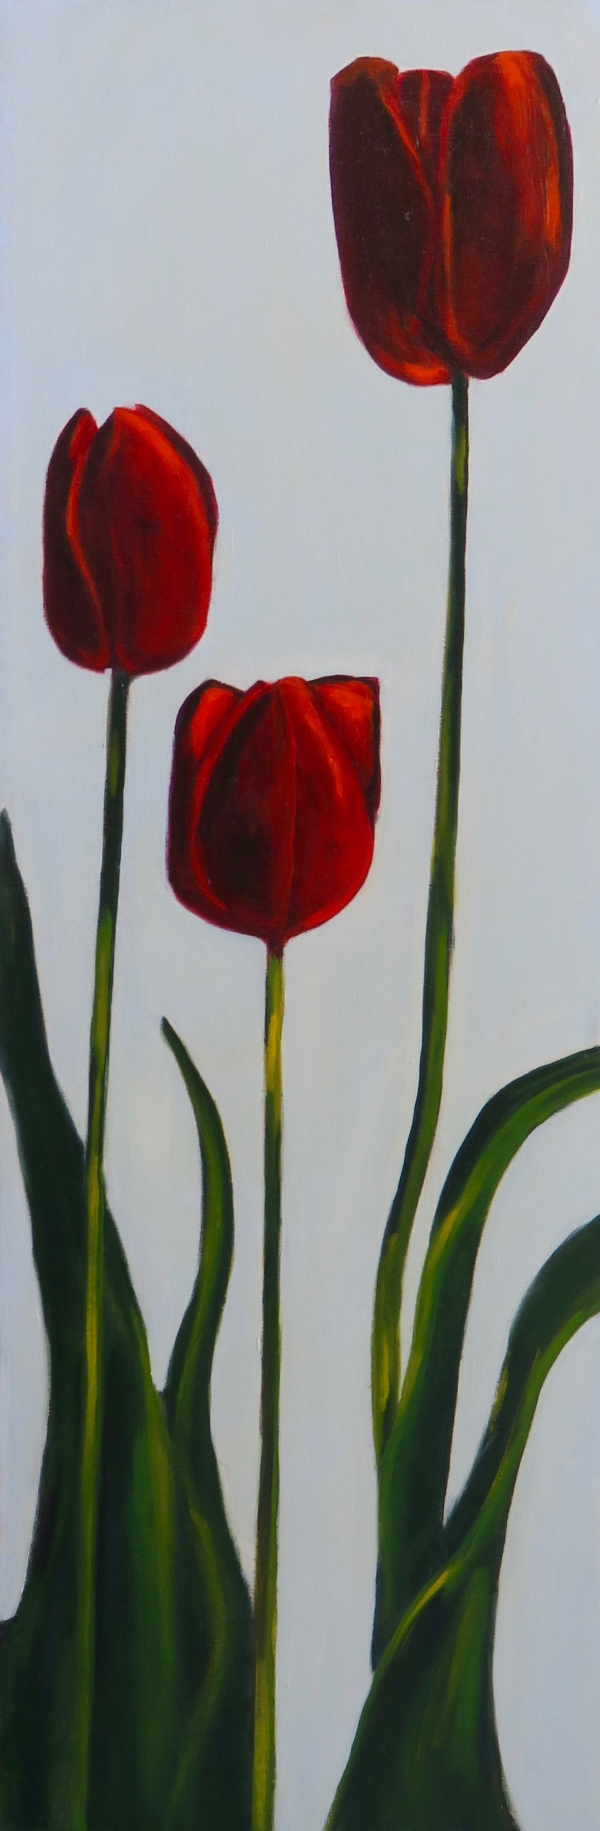 THREE RED TULIPS